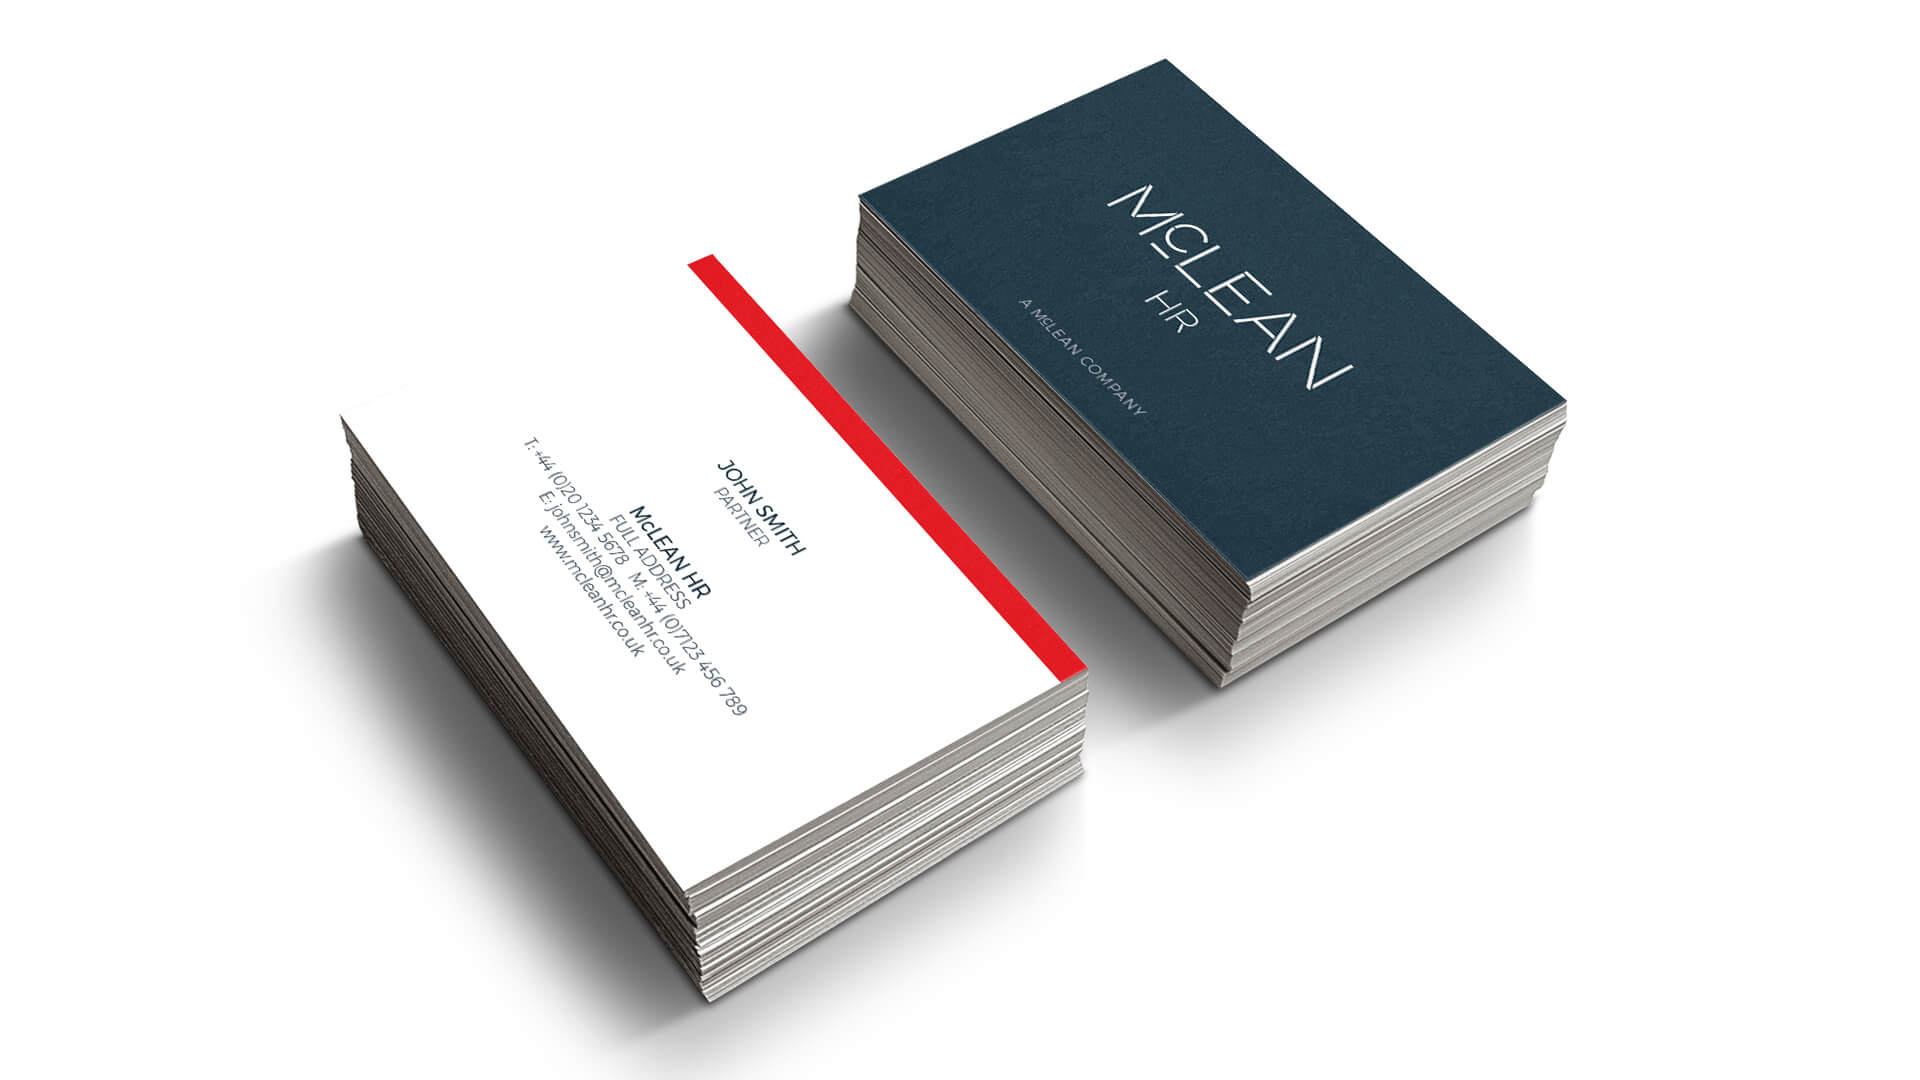 mclean group rebranding brand implementation rollout